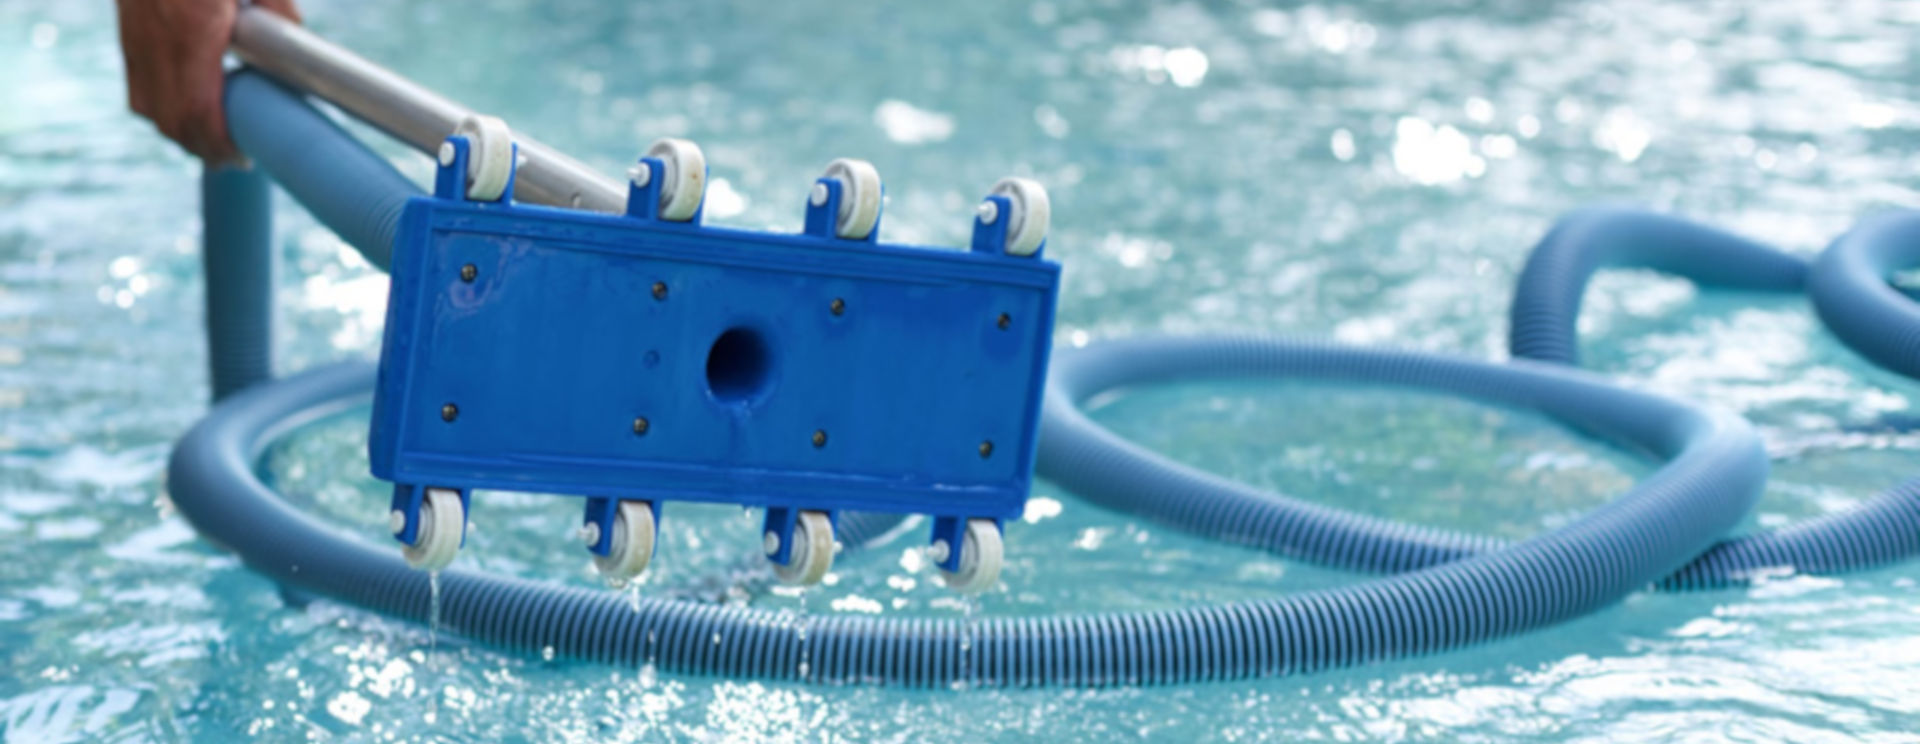 Pool Cleaning Amp Maintenance Services Swimming Pool